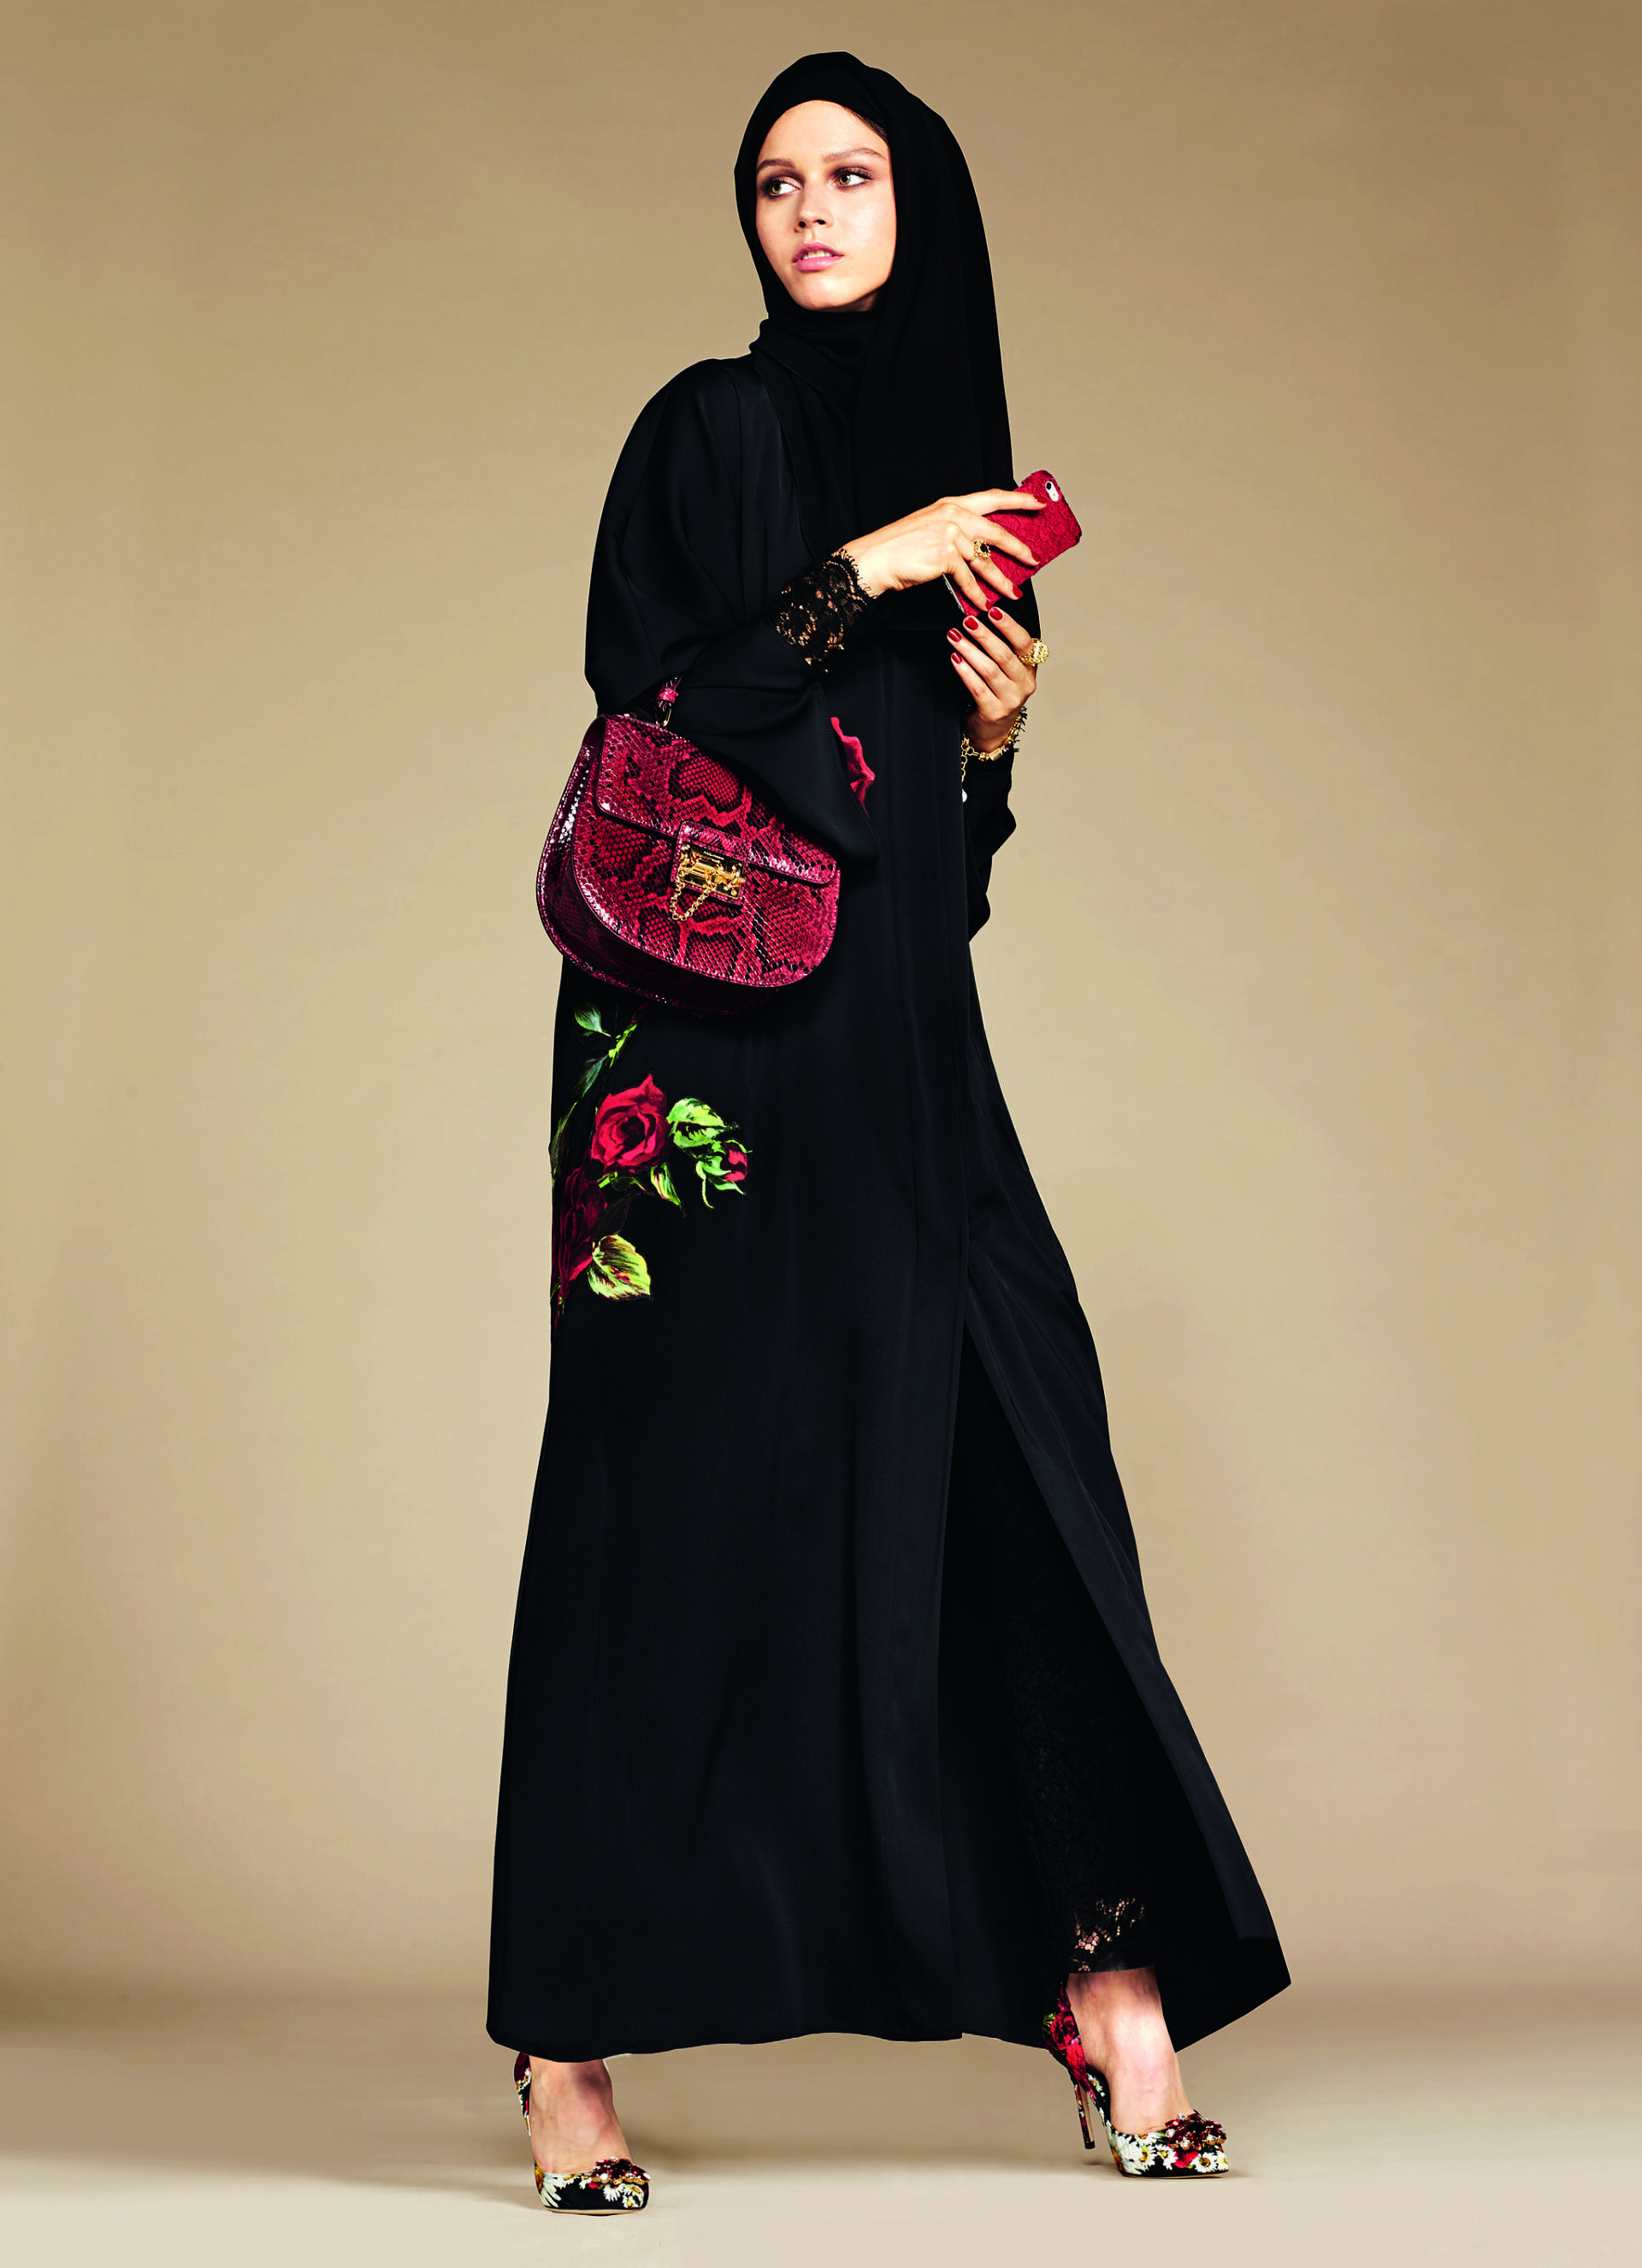 Over_Exposed_Dolce-Gabbana-Hijab-Abaya-Collection11